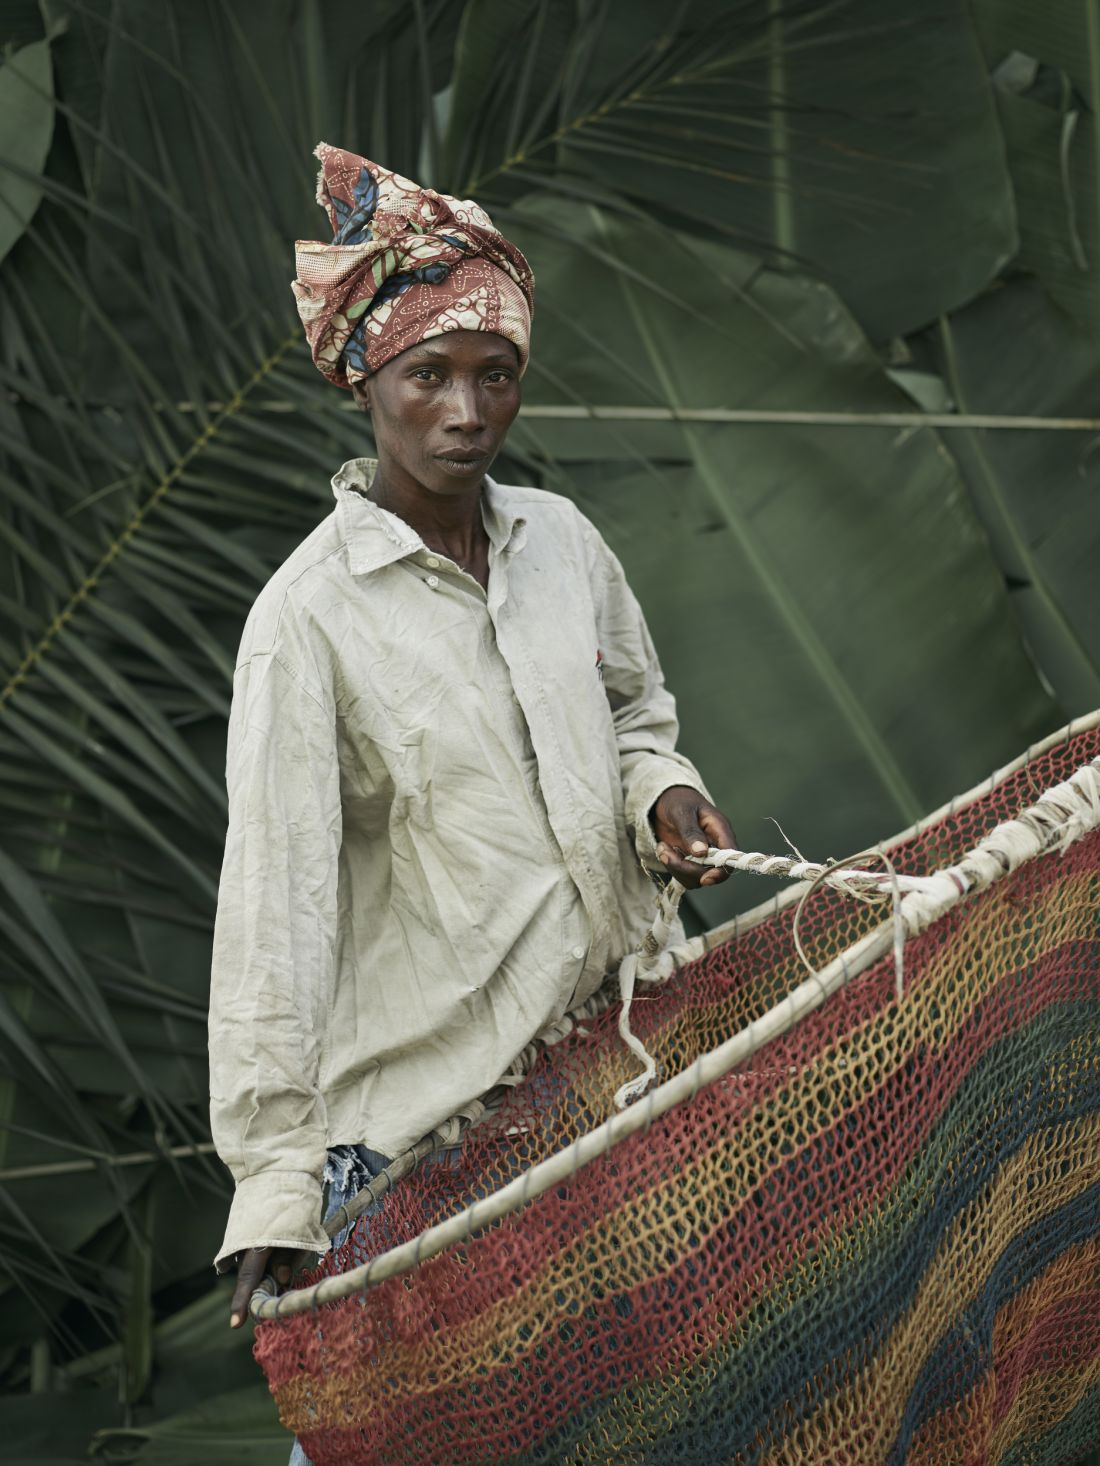 Massa Kennie, holding home-made hooped nets used for fishing, in the village of Tombohuaun, Kailahun District, Sierra Leone, May 2017. WaterAid/ Joey Lawrence